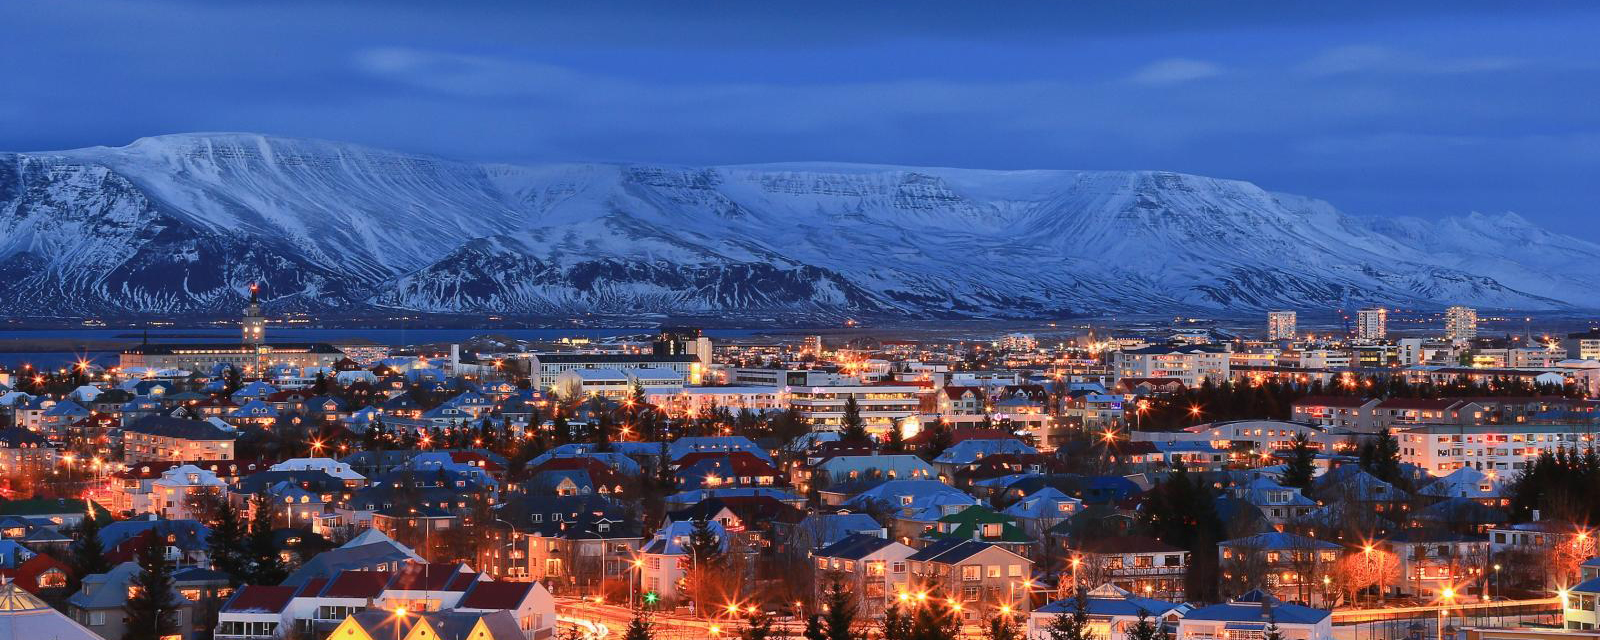 Iceland Becomes the First Country inthe World toMake Employers Pay Men and Women Equally advise